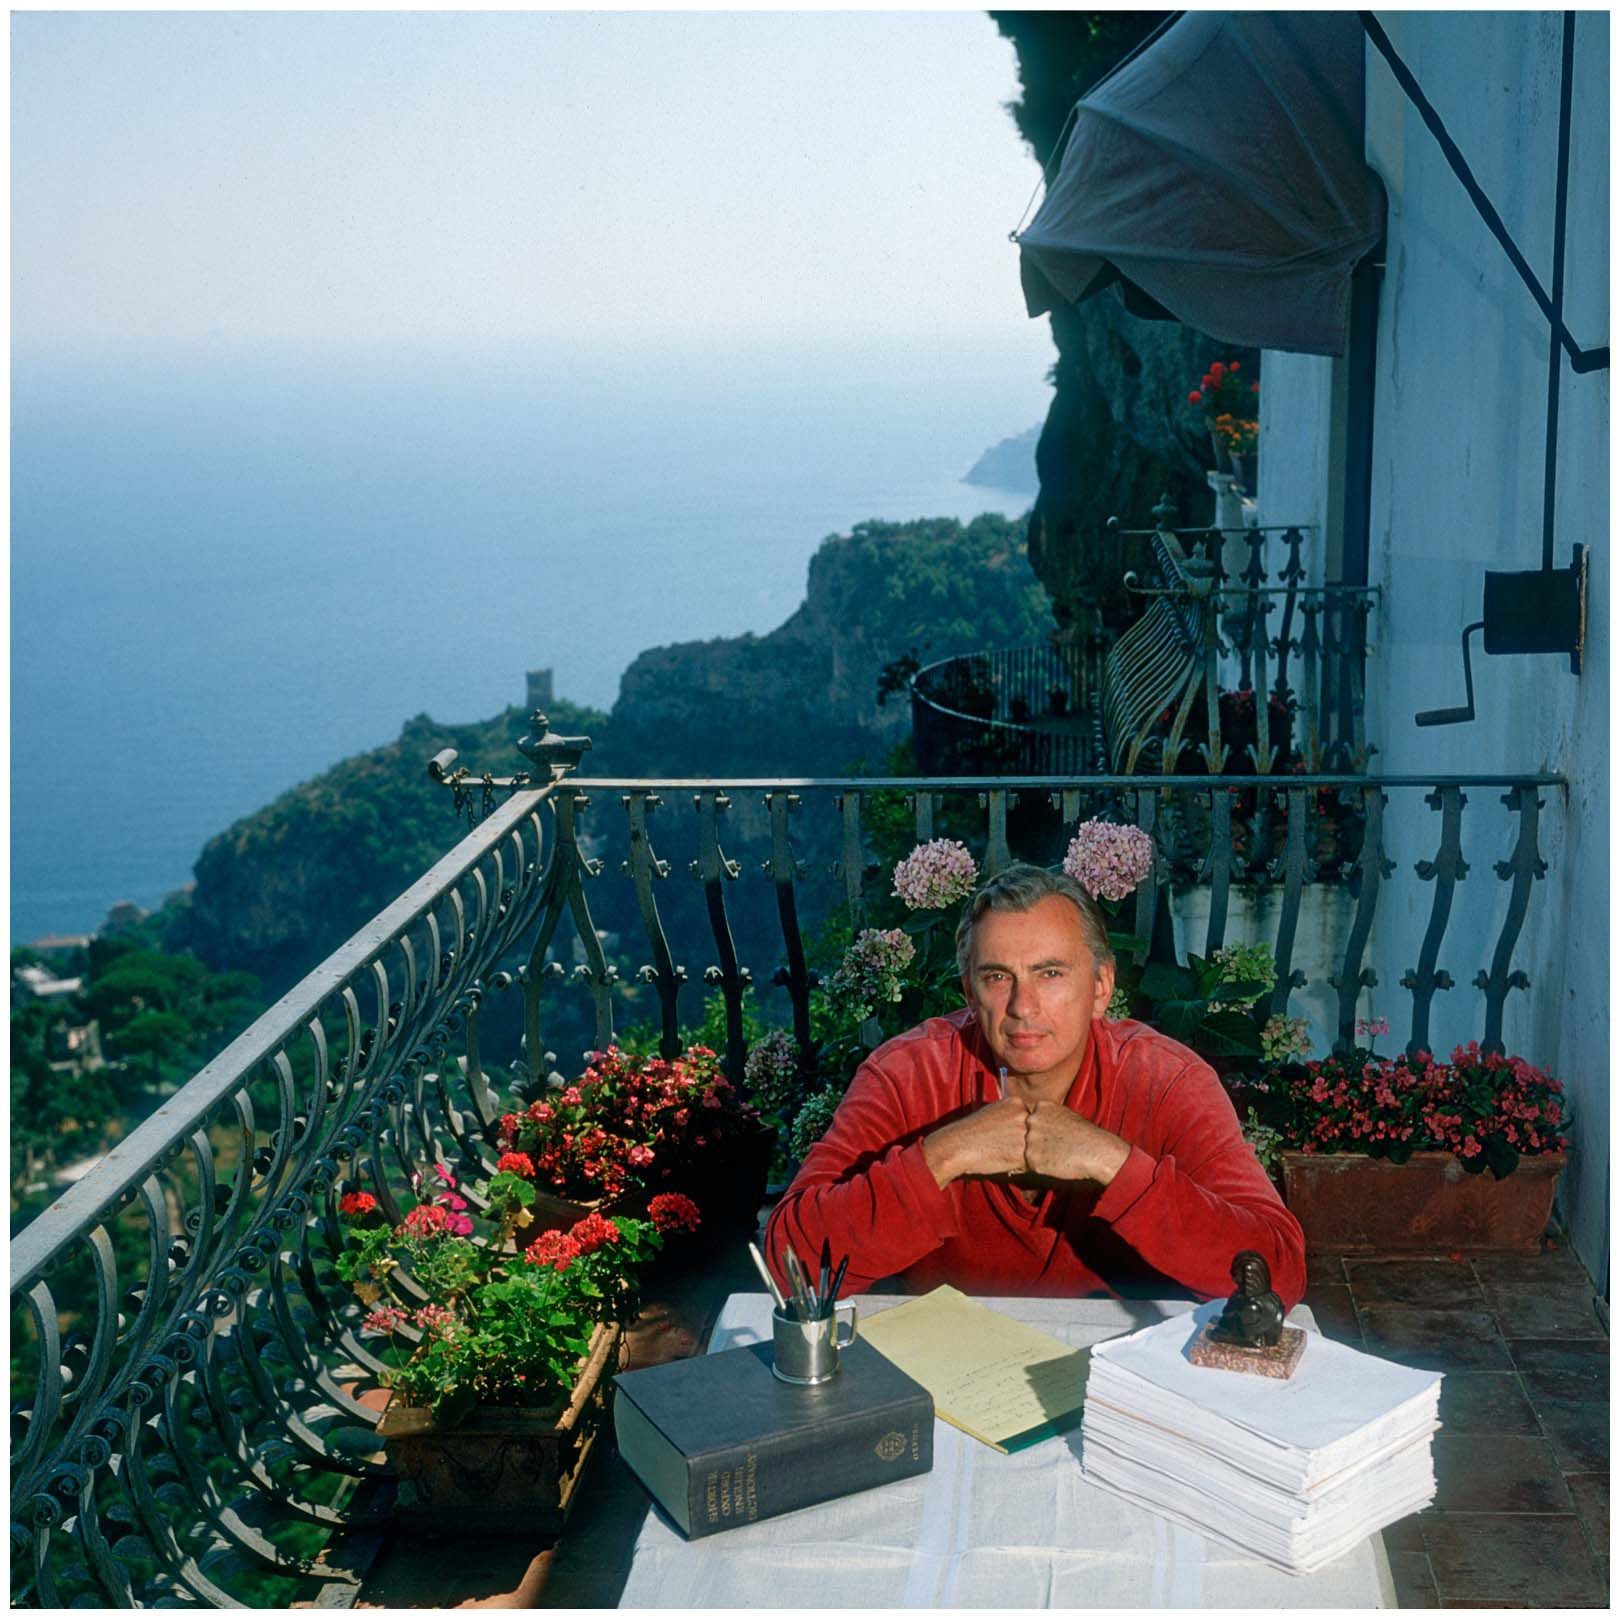 the life and works of gore vidal Author gore vidal, who died yesterday, published 25 novels in his  world as the  early indian exhibit room, a favorite exhibit of t's childhood.